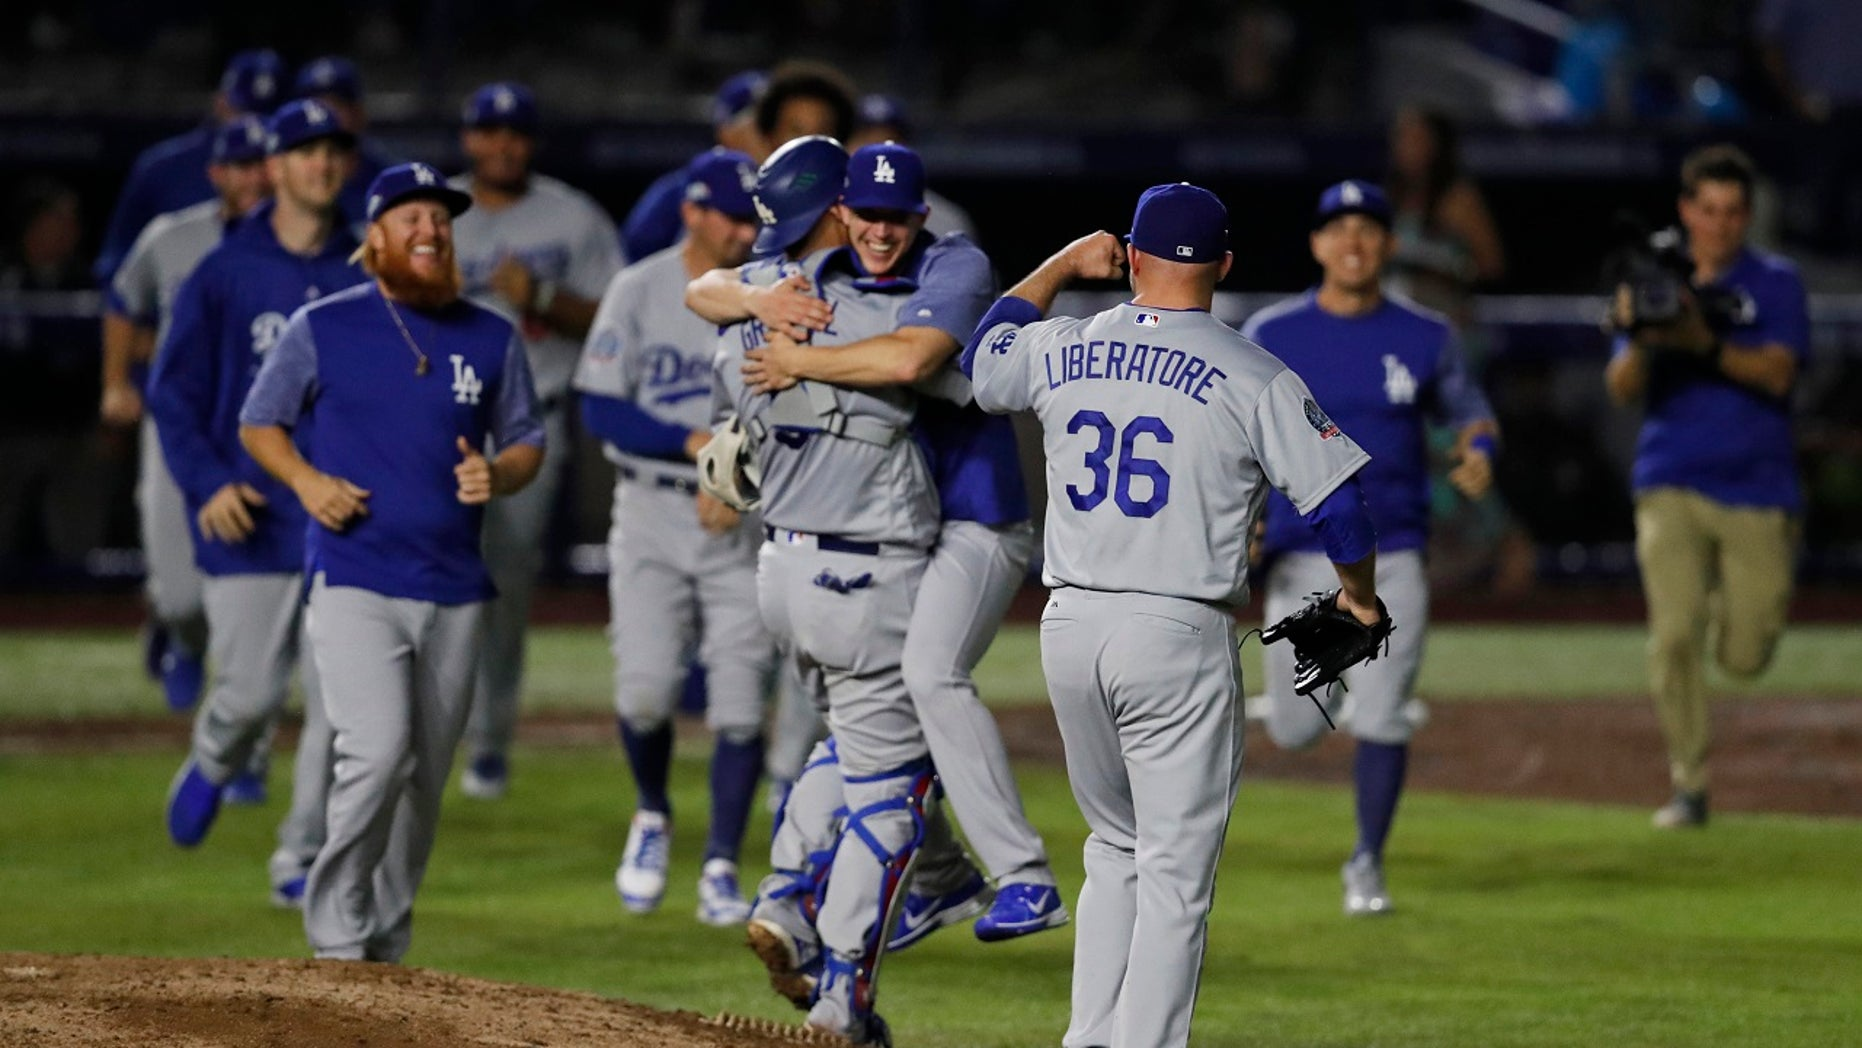 The Los Angeles Dodgers celebrate their 4-0 victory over the San Diego Padres, the first MLB no-hitter in Mexico, May 4, 2018.